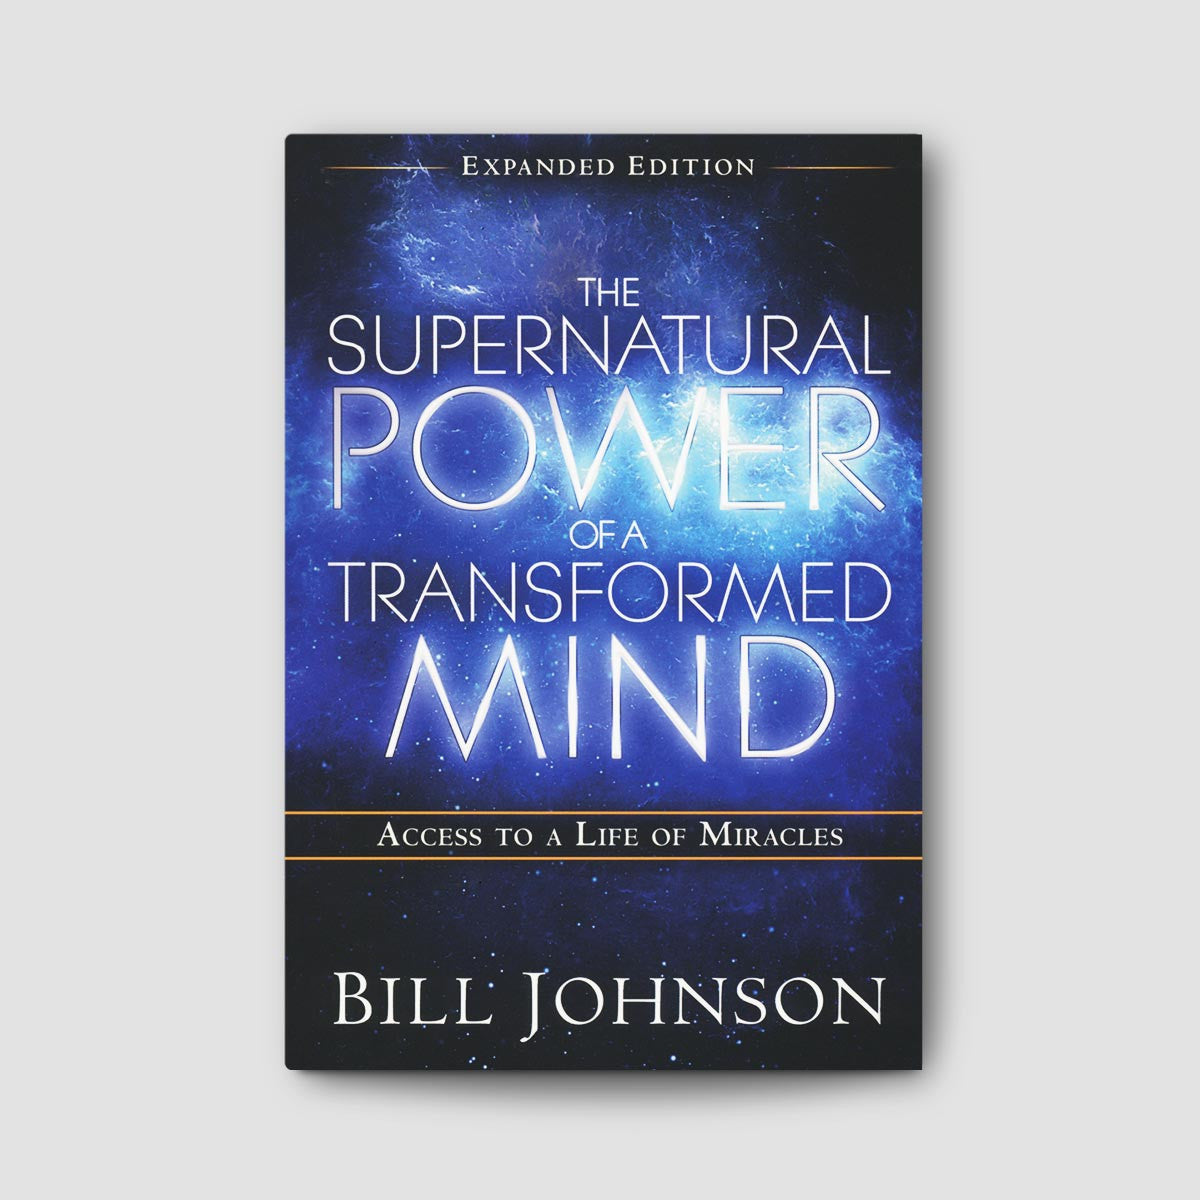 The Supernatural Power of a Transformed Mind